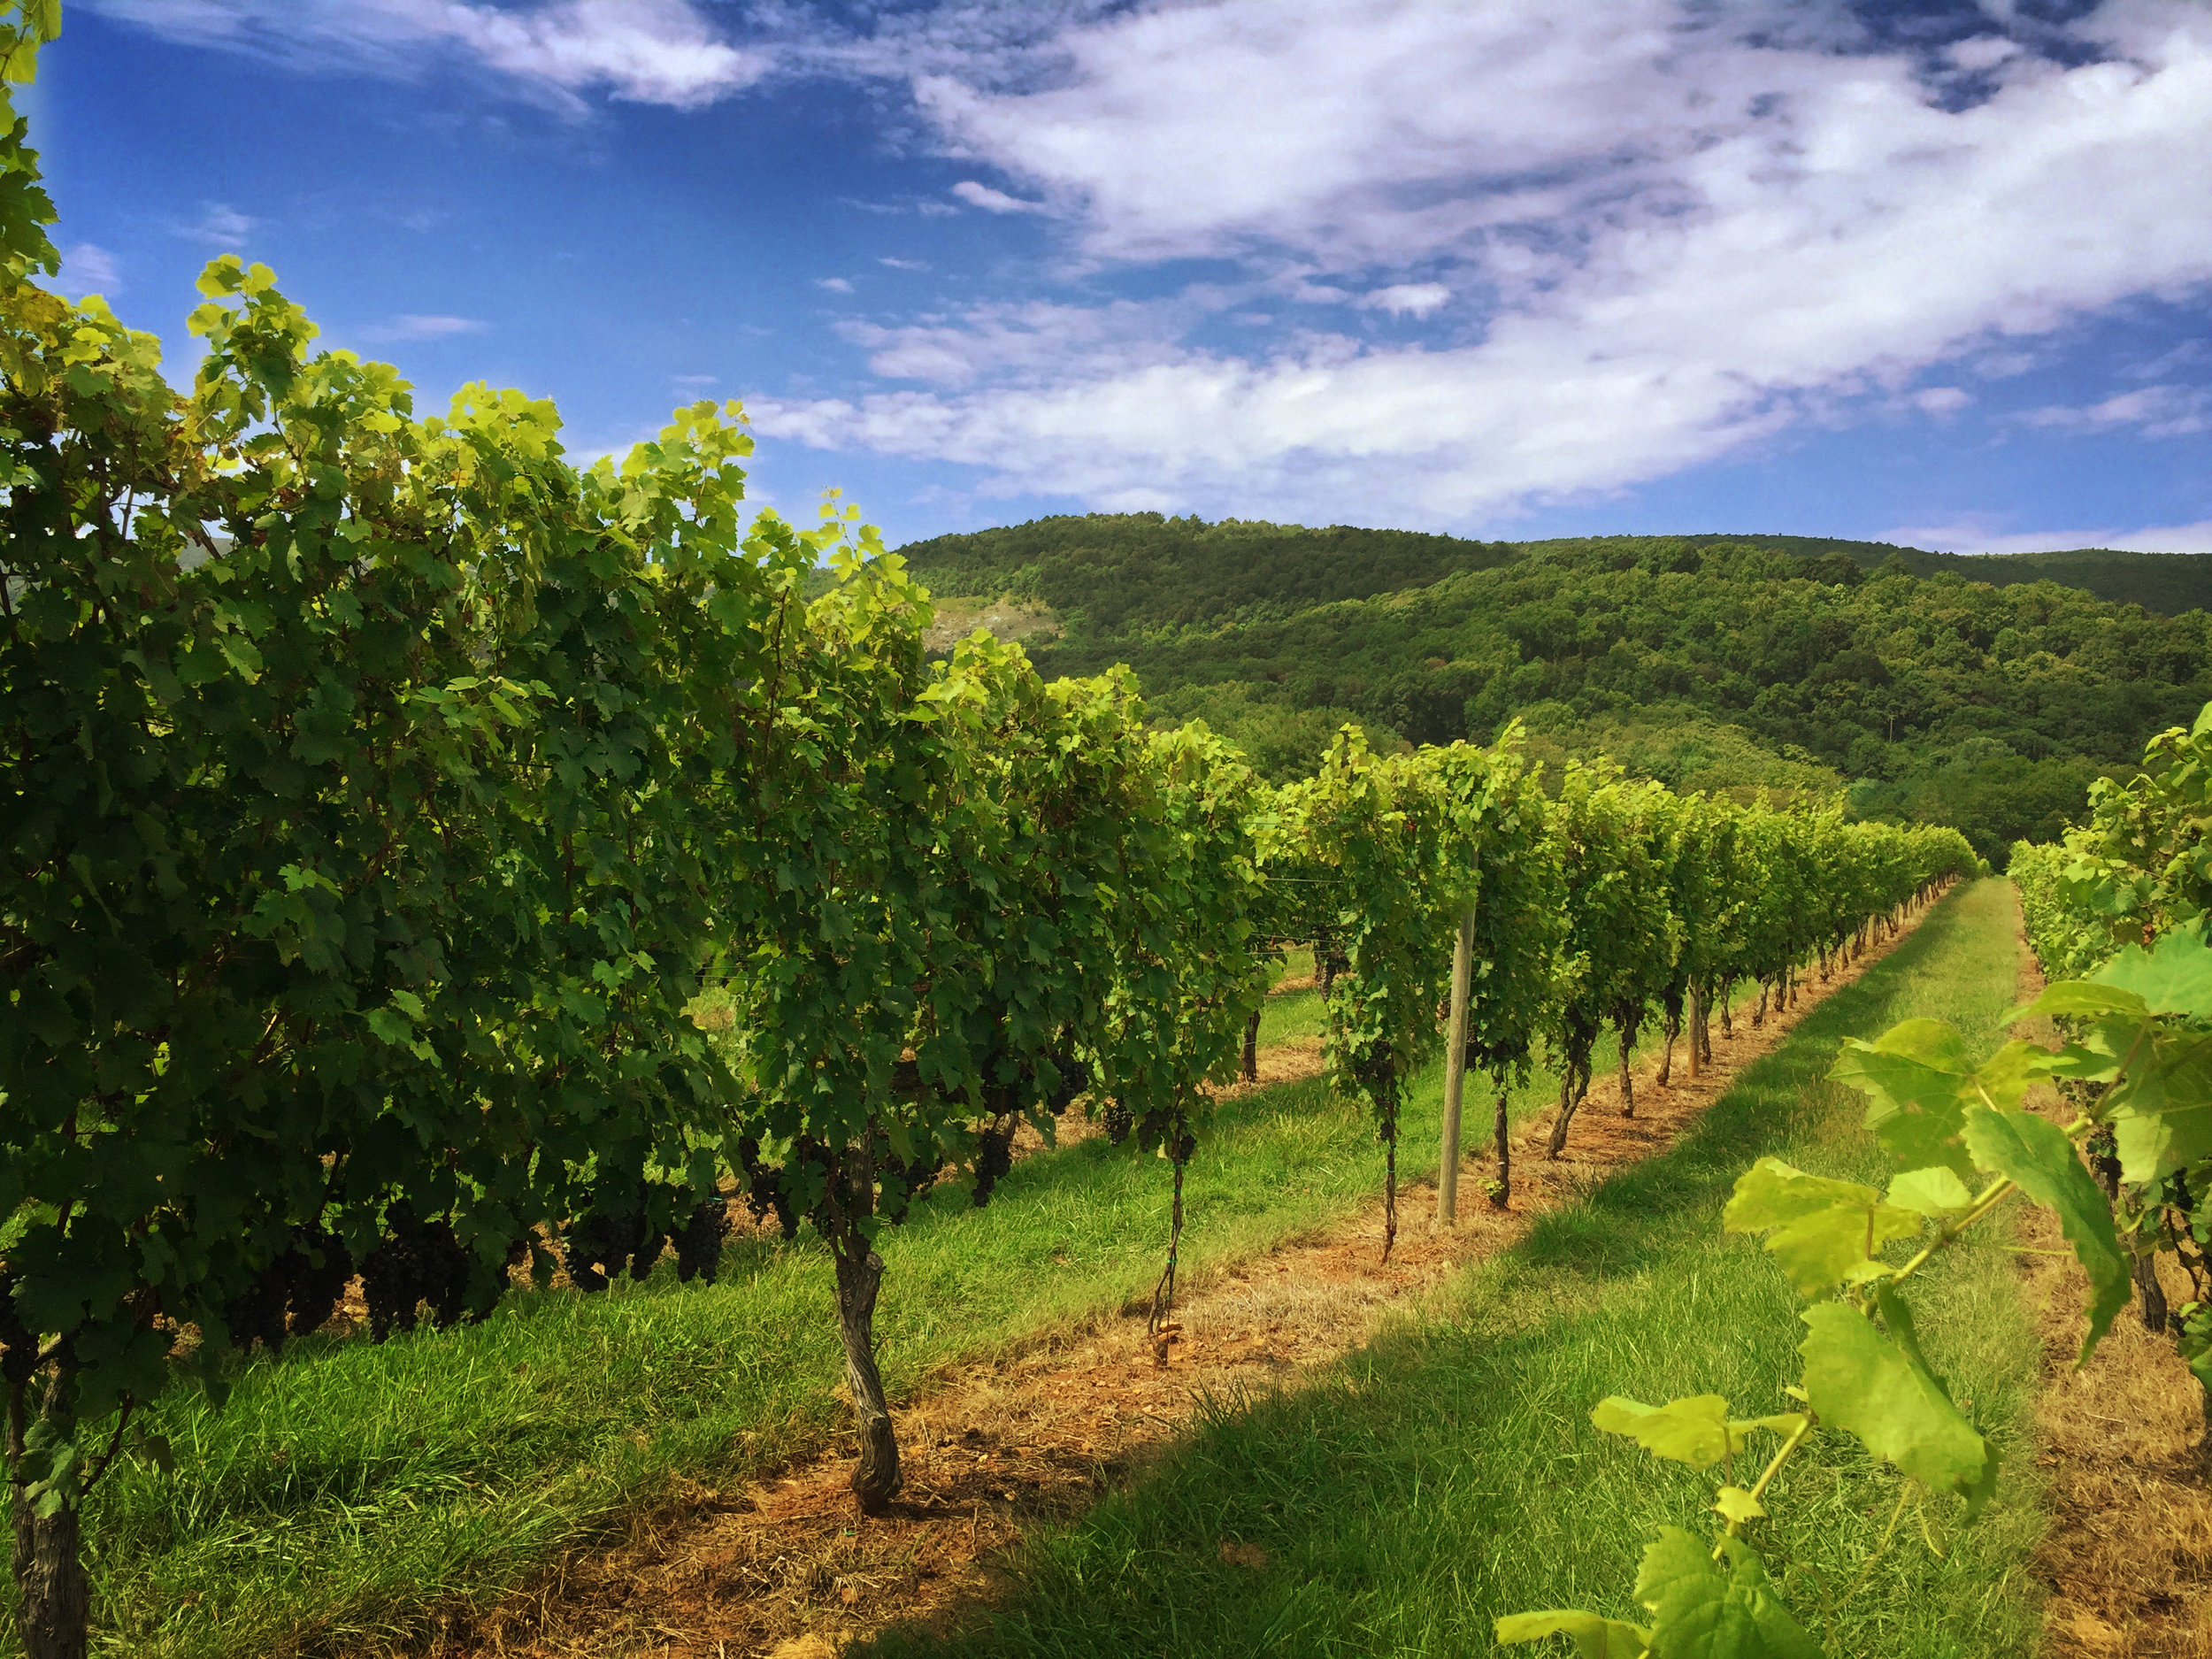 West - Features: King Family Vineyards, Veritas Vineyards & Winery, Stinson Vineyards, Pollak Vineyards, and Grace Estate Winery